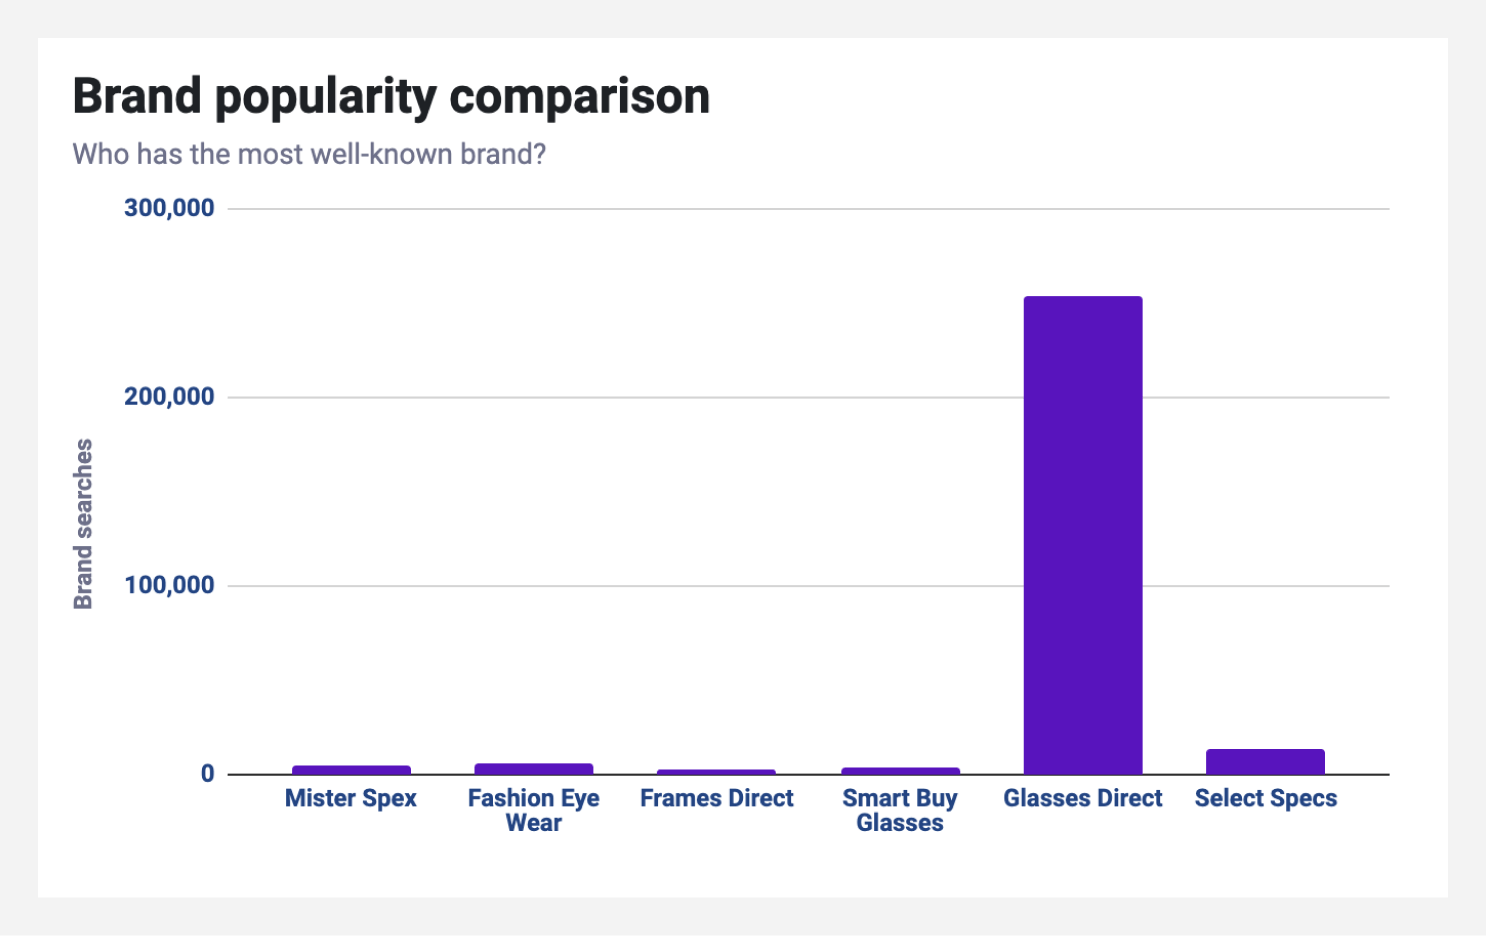 Brand popularity comparison chart from the analysis template.